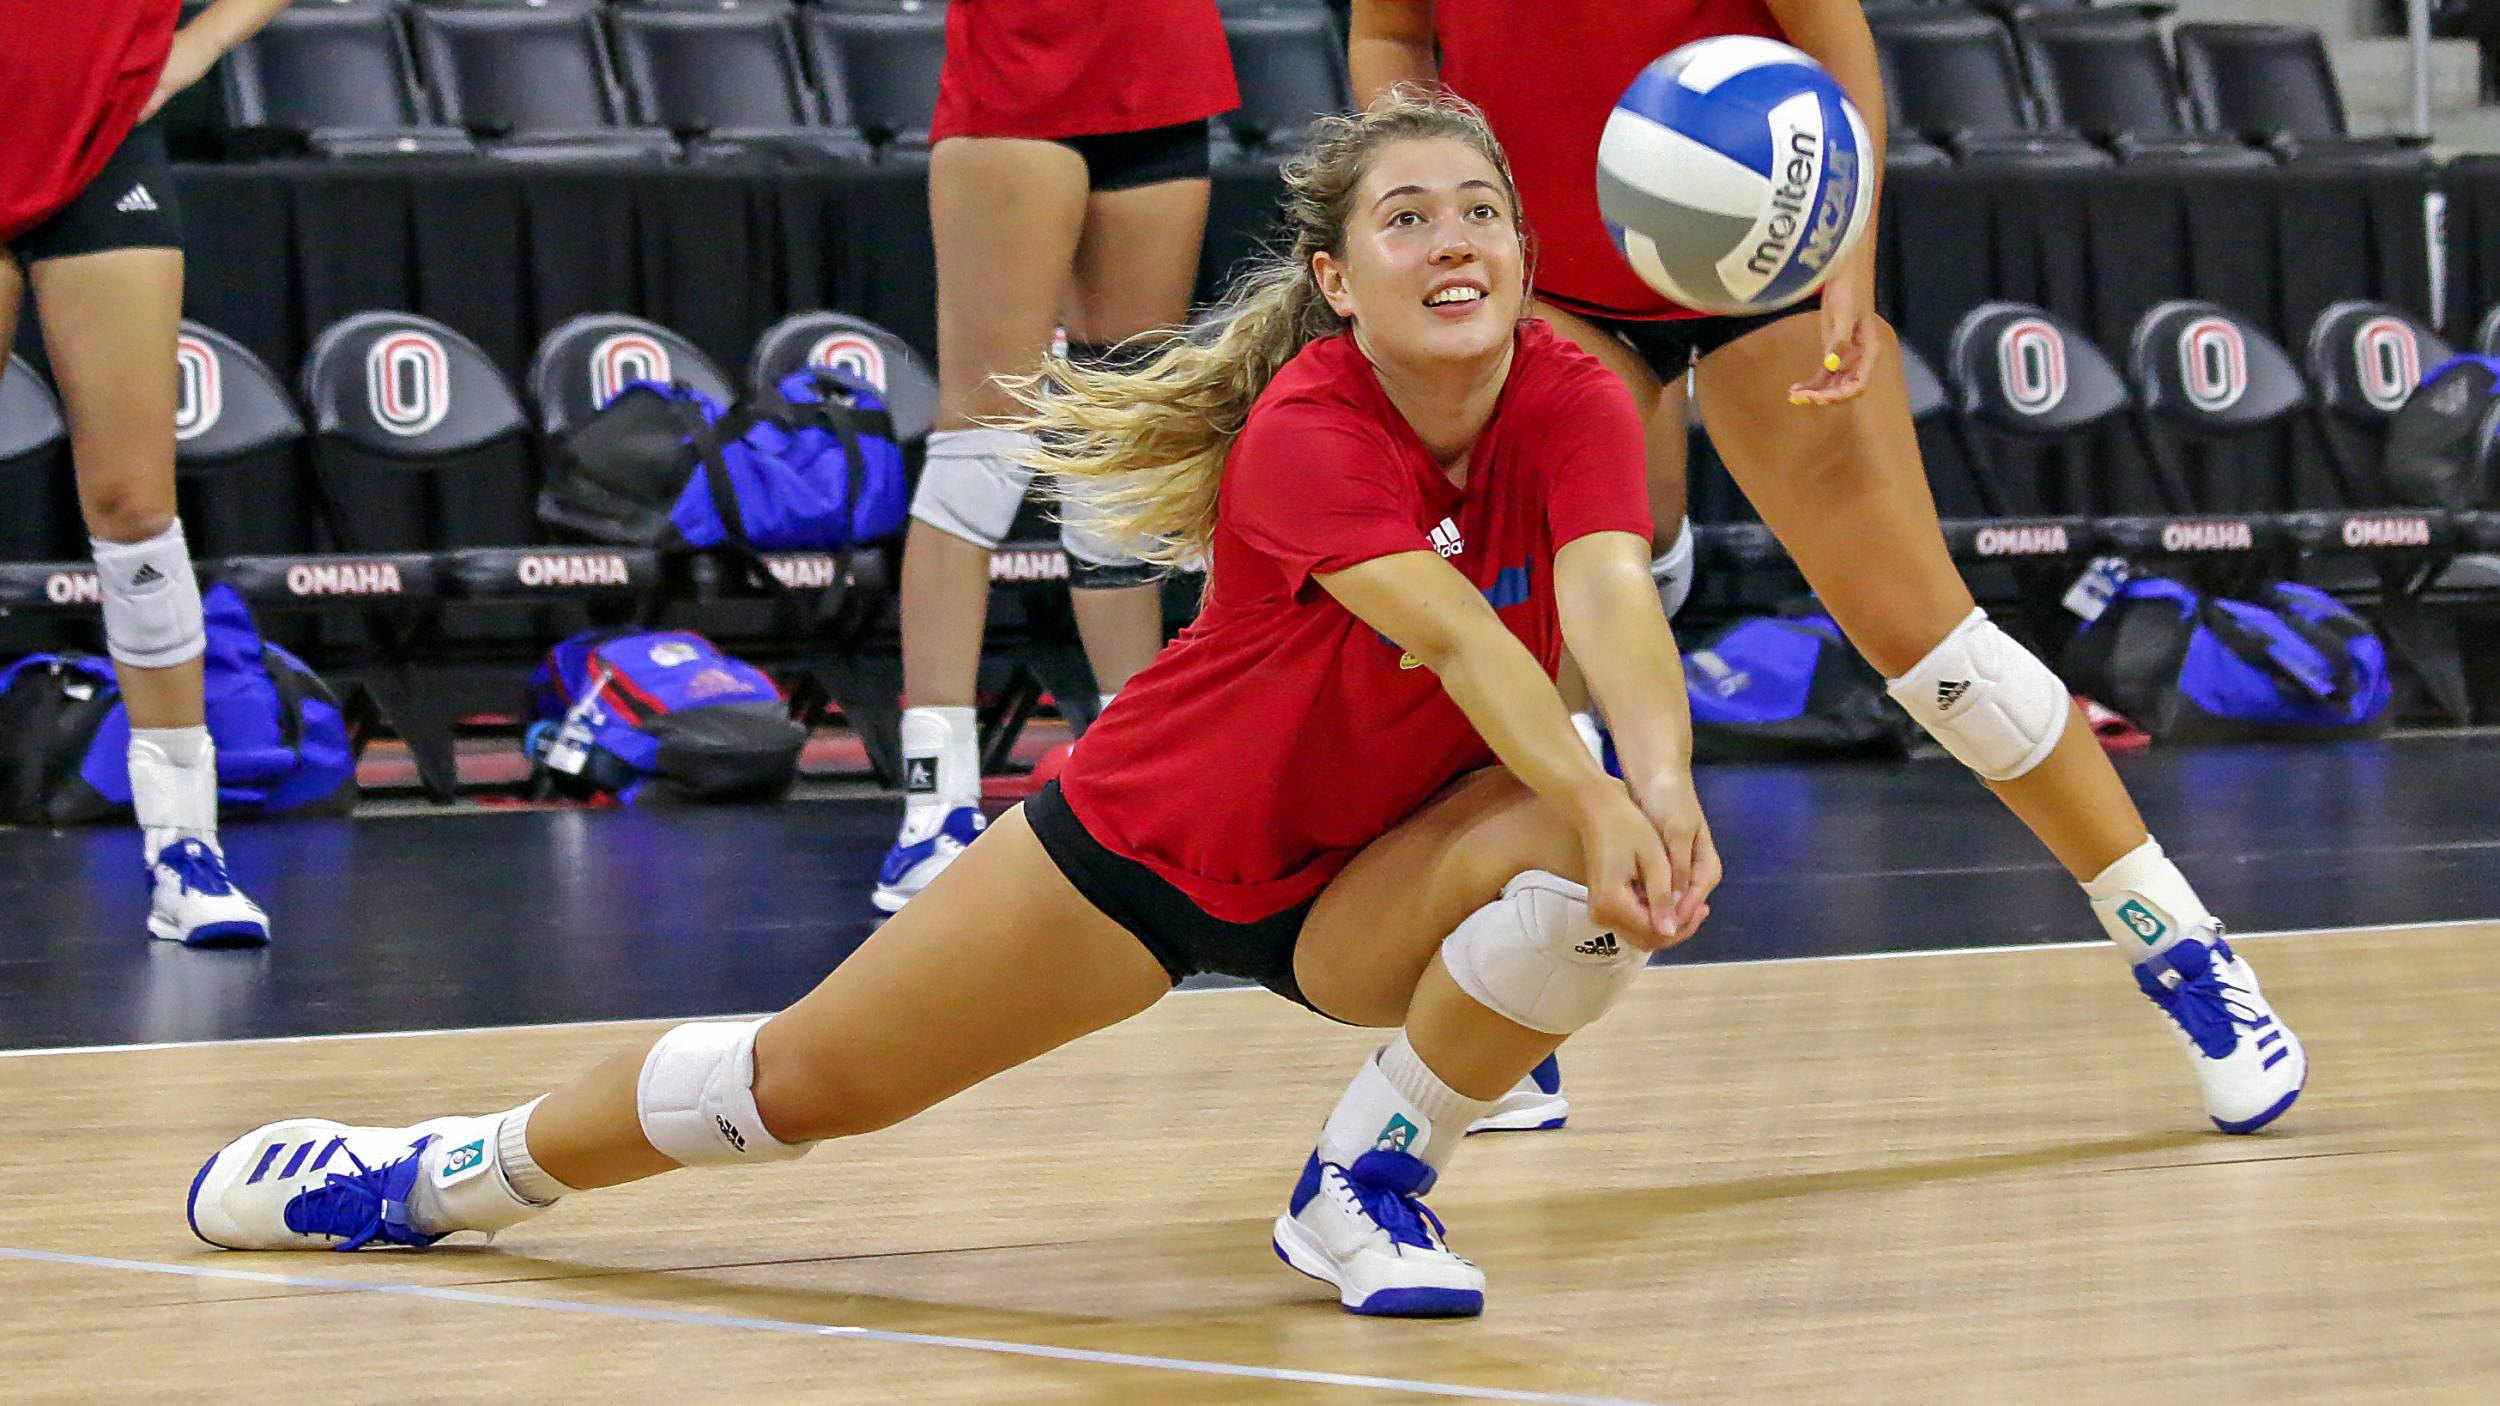 Sara Nielsen goes for a dig during practice at Baxter Arena Sept. 3, 2019.